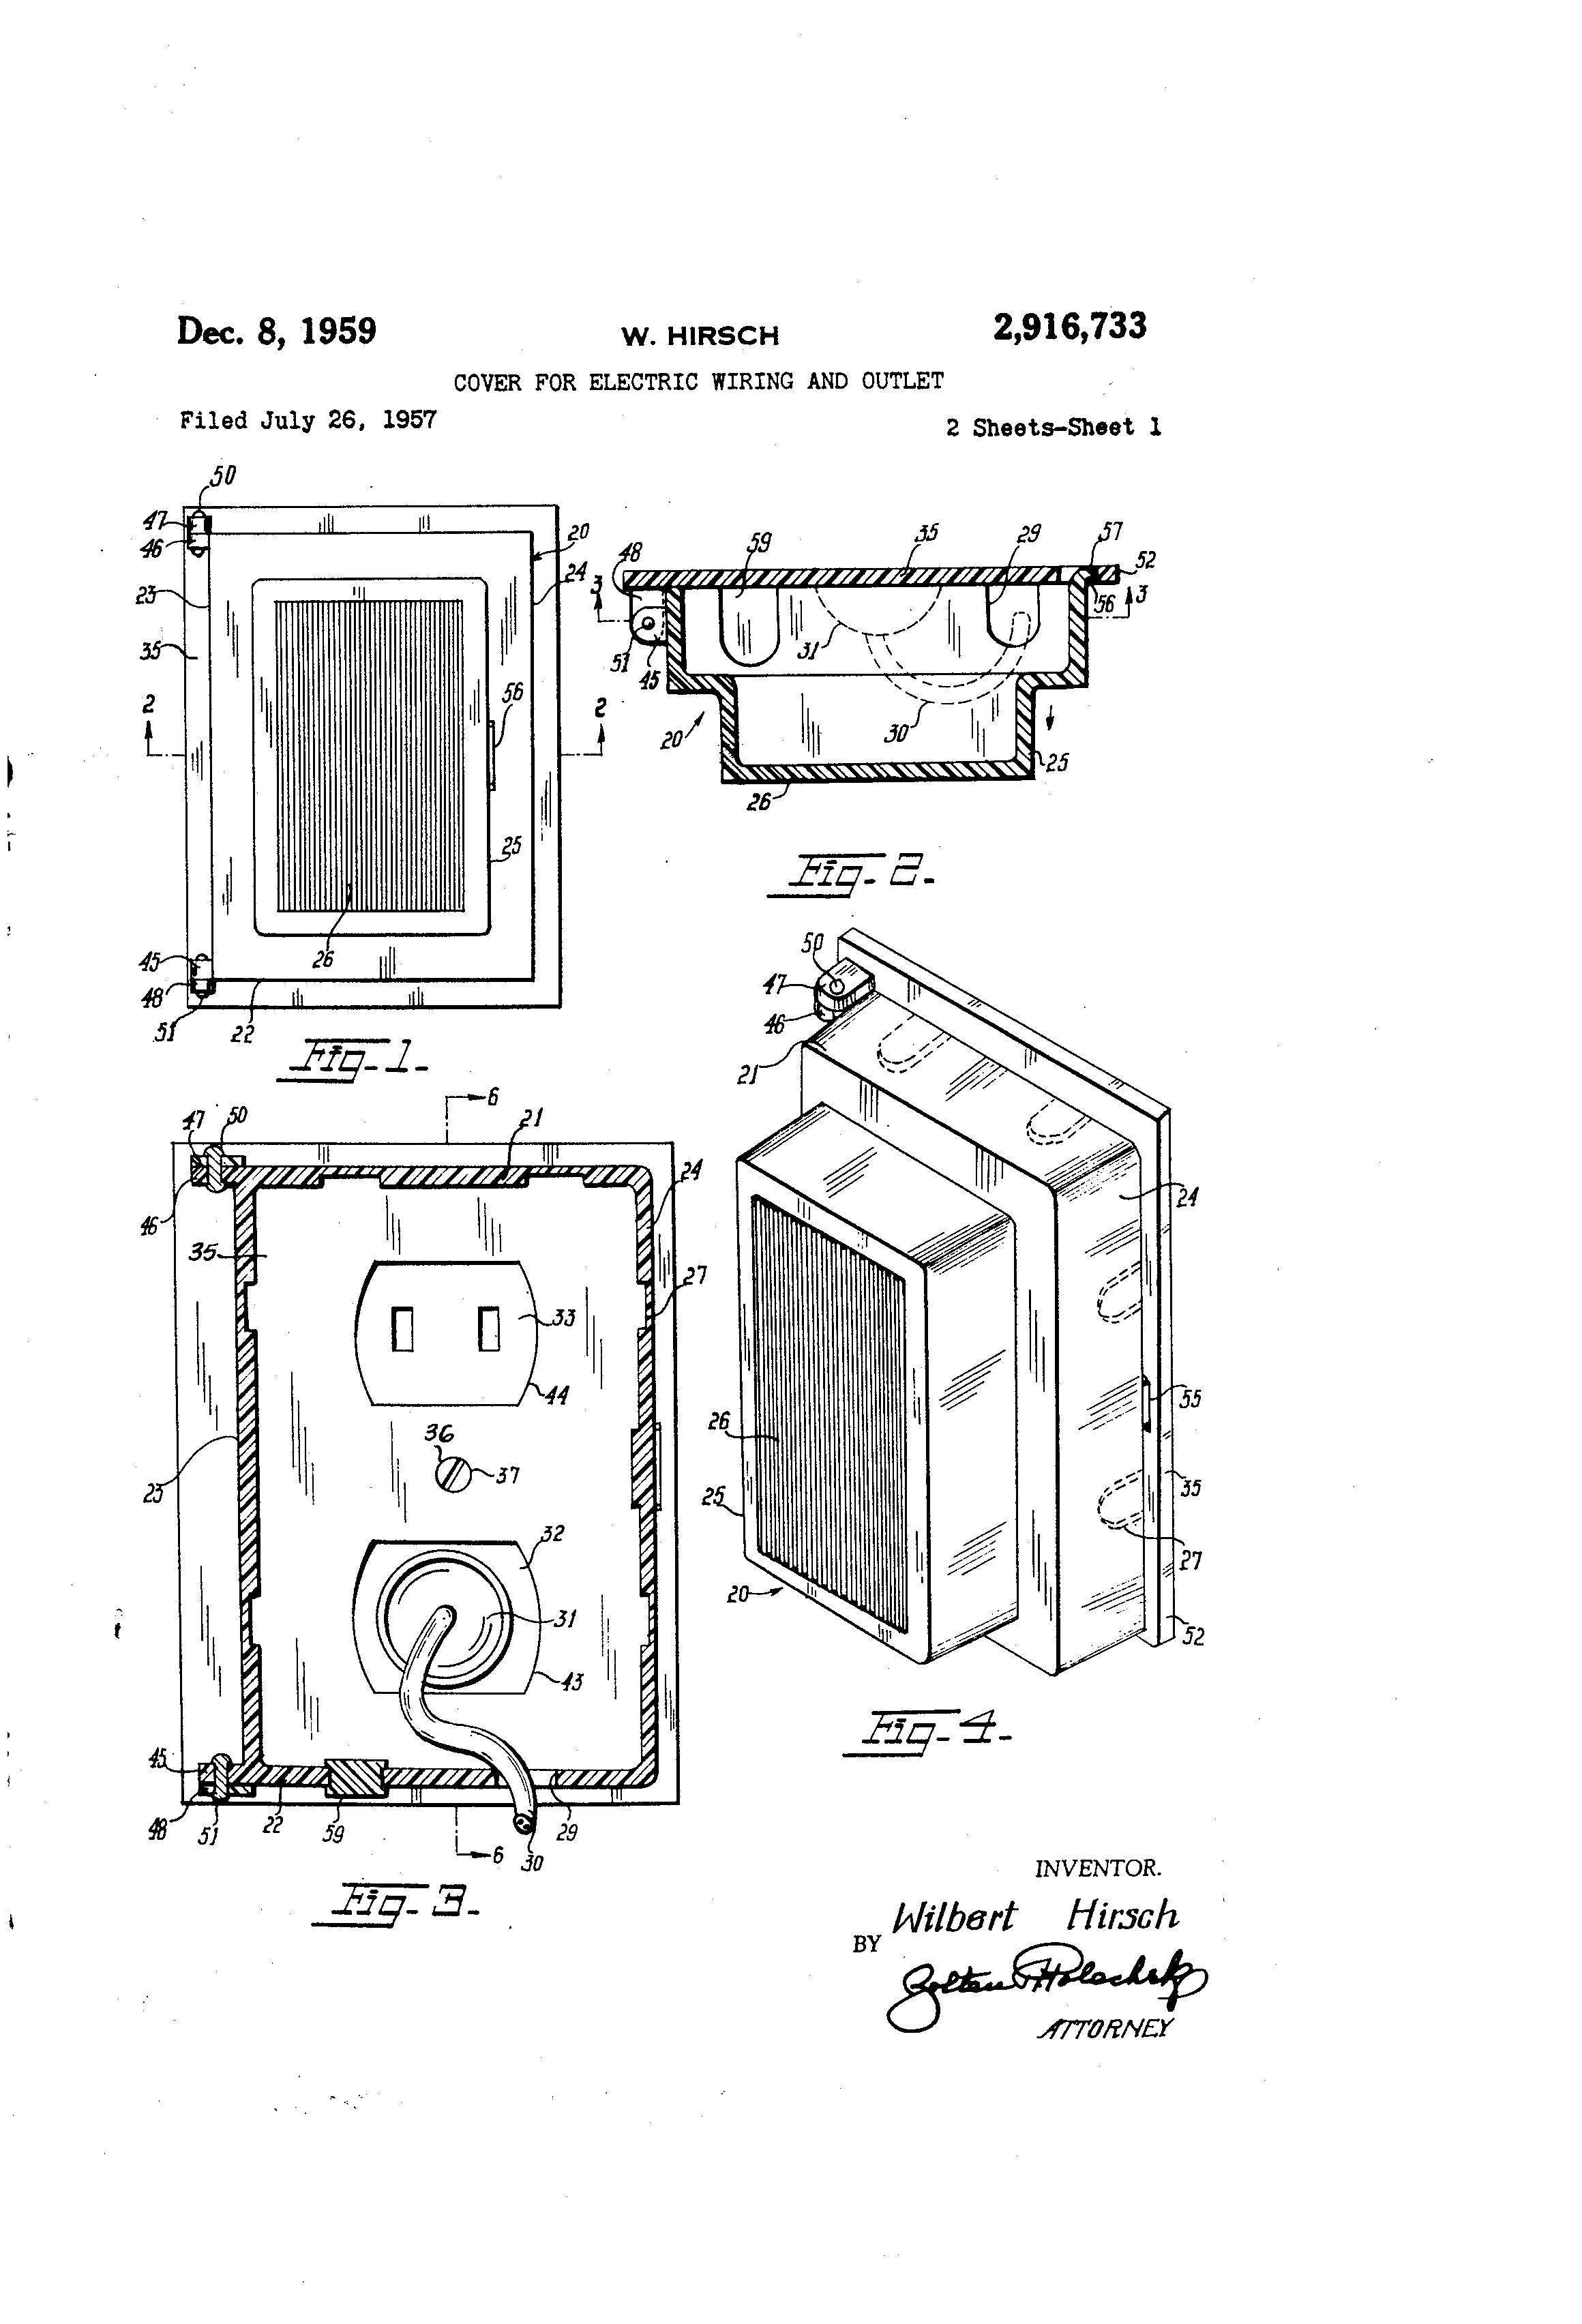 patent us2916733 - cover for electric wiring and outlet